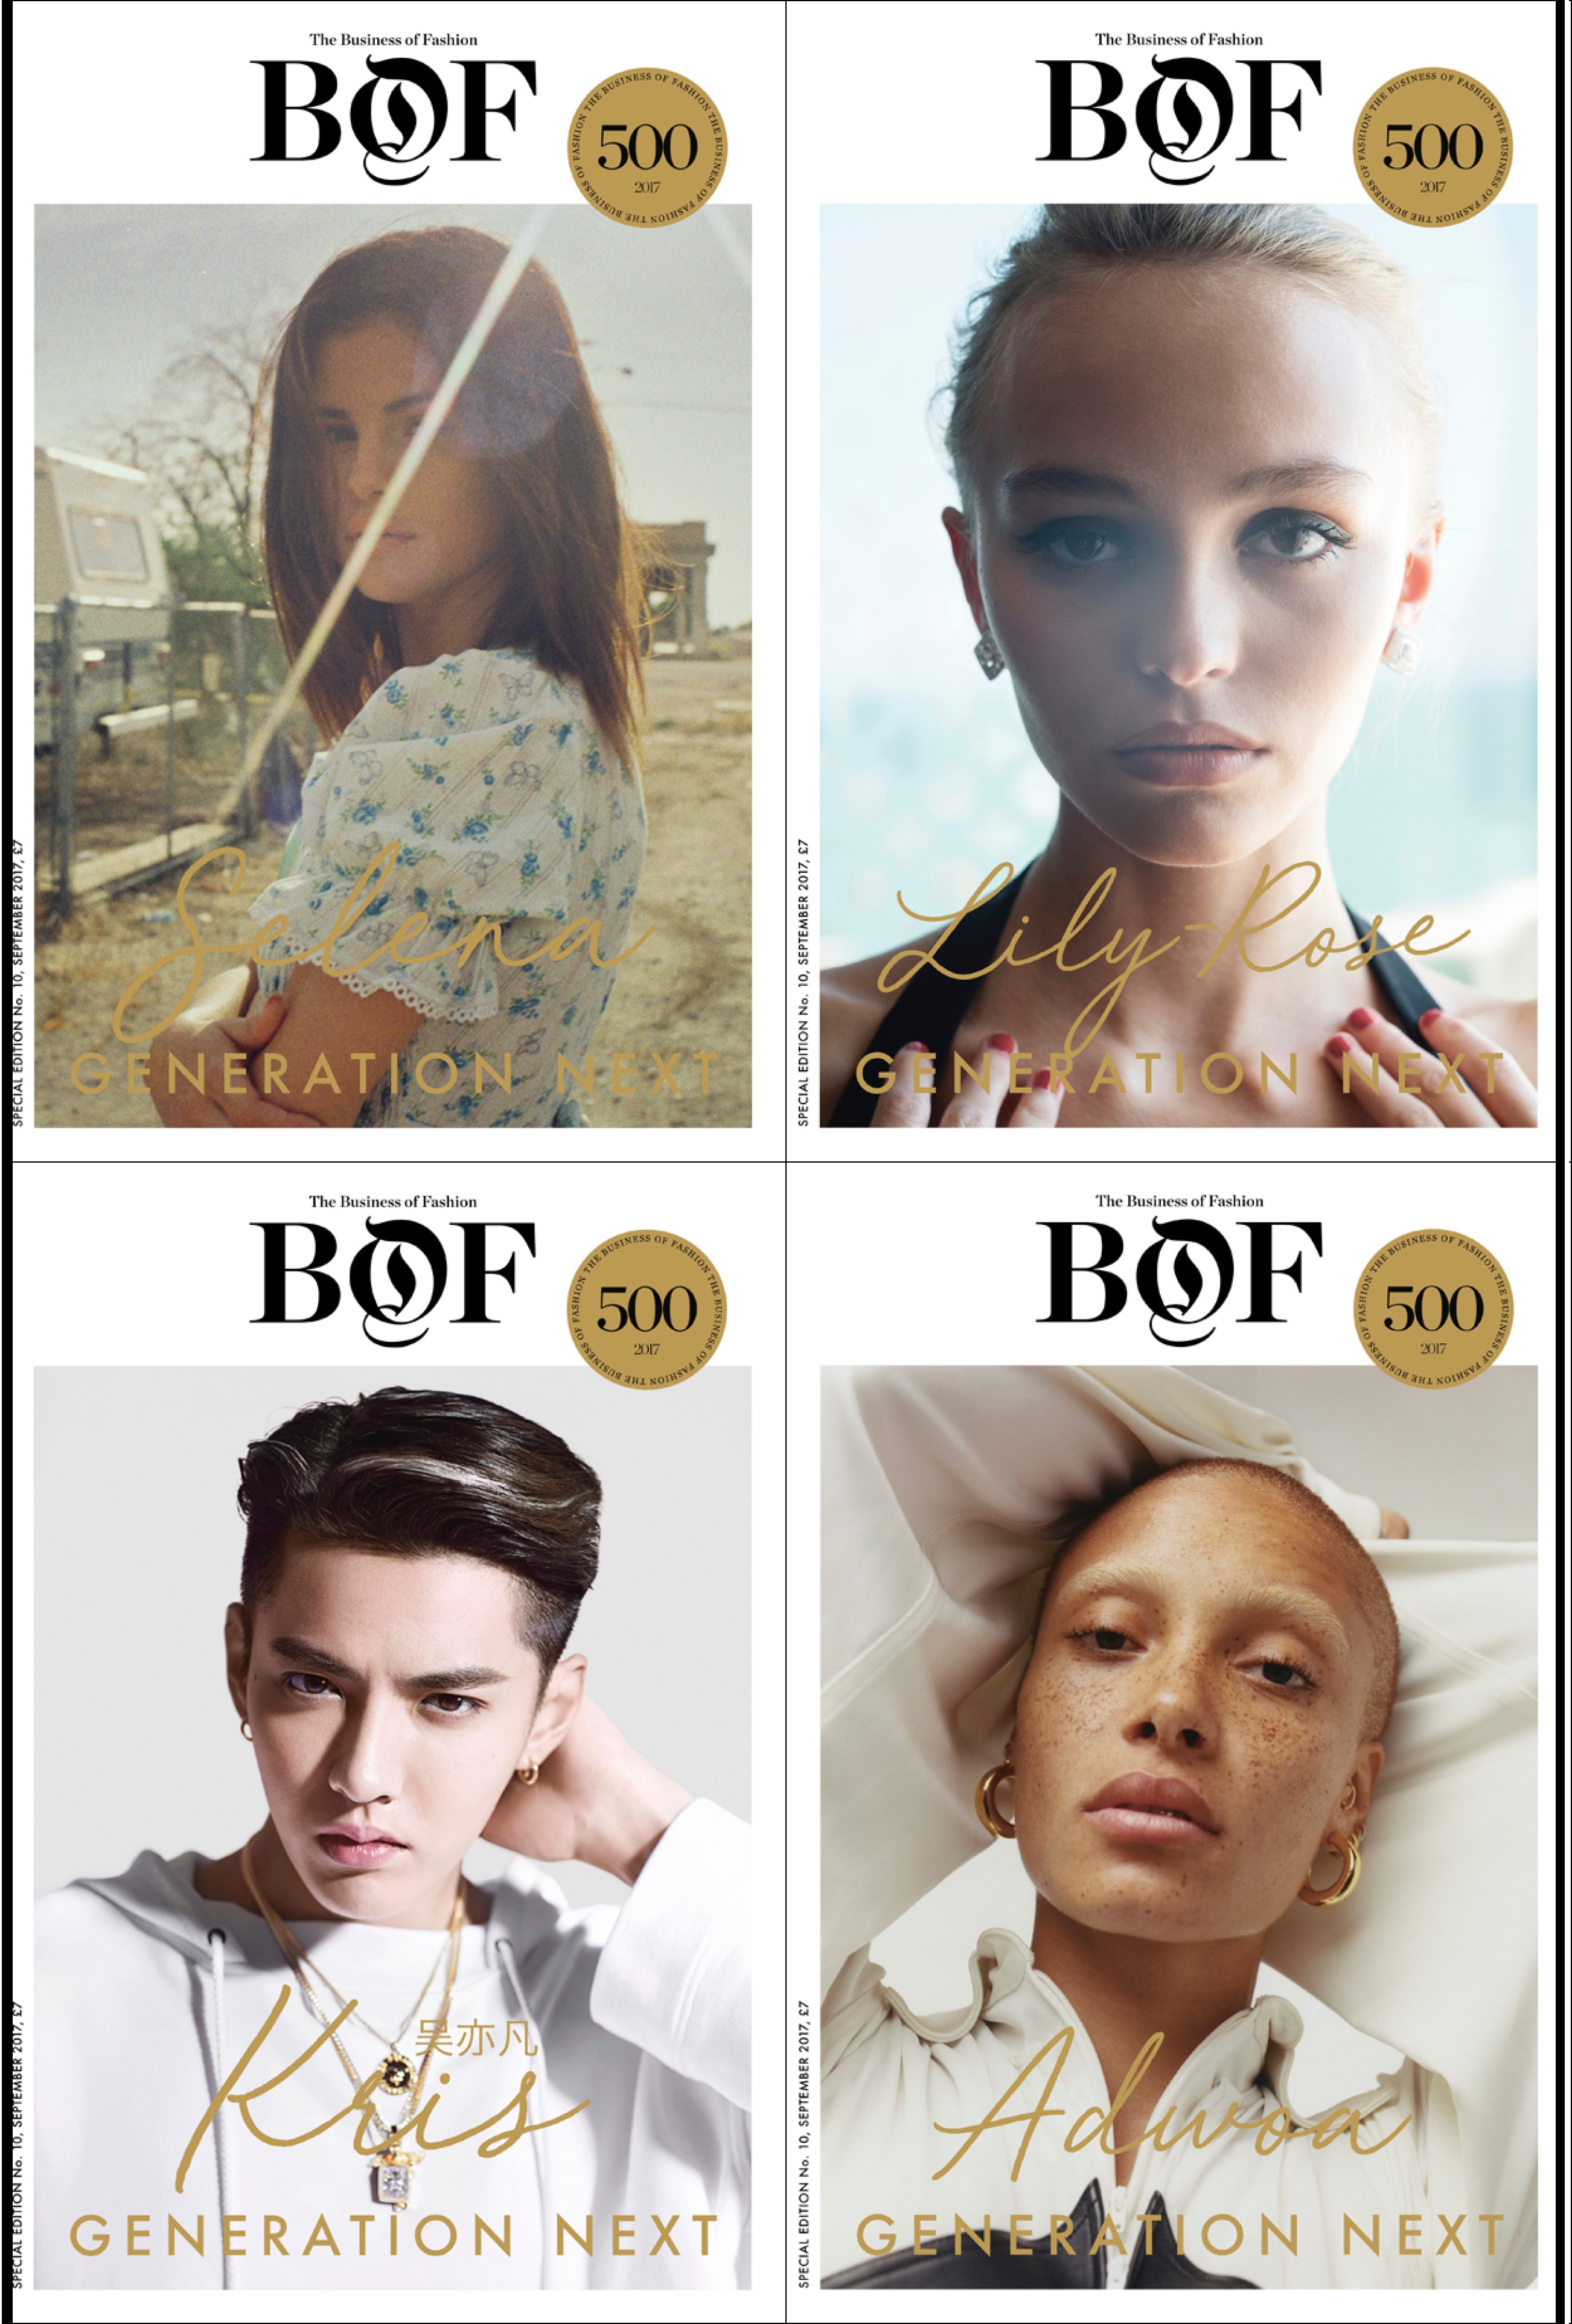 Clockwise, from top left: Selena Gomez, Lily-Rose Depp, Adwoa Aboah, Kris Wu